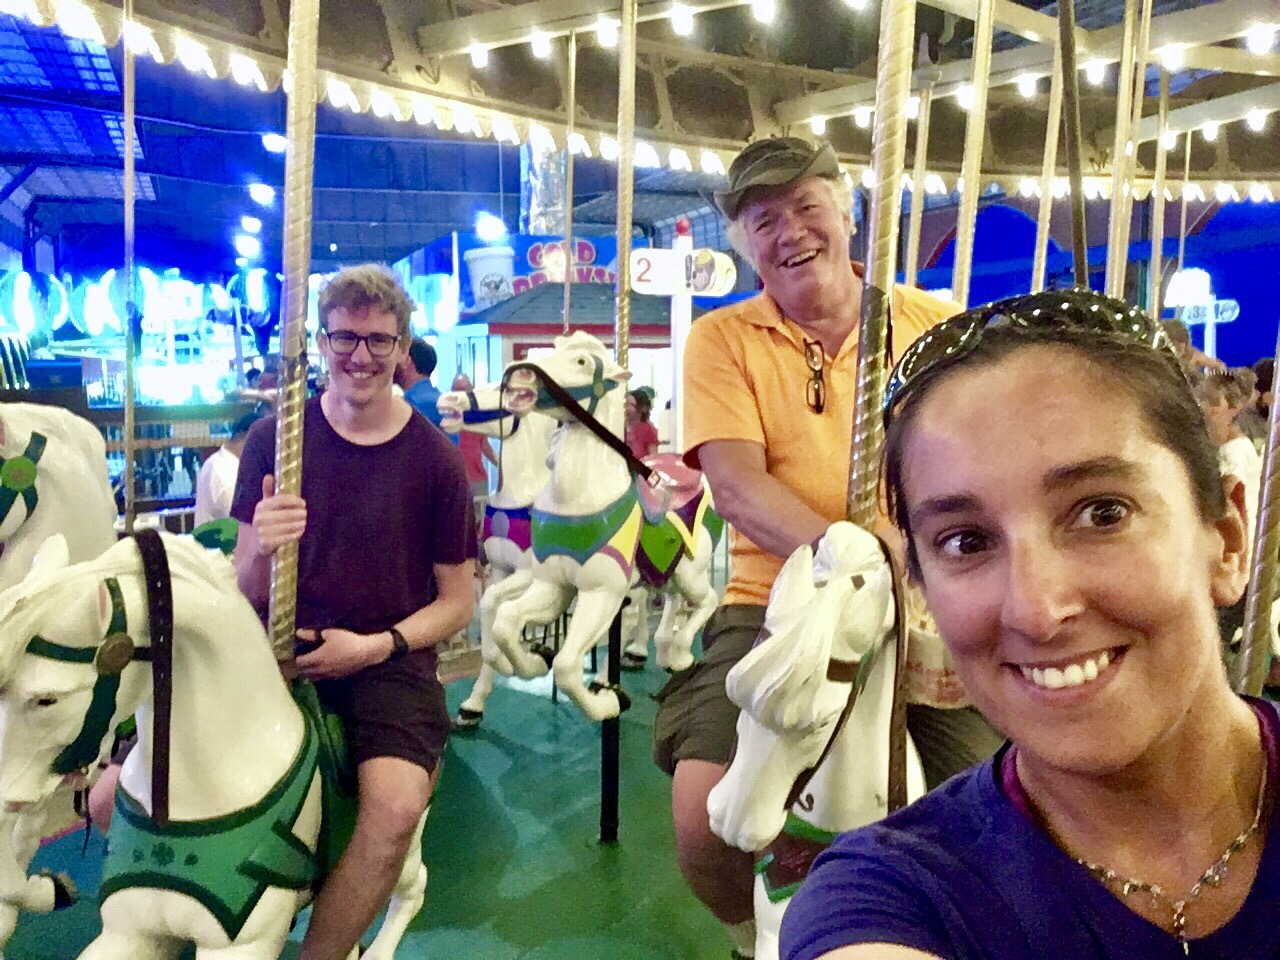 Ben, Steph and Warmshowers host, Tom, on horse carousel in Ocean City, USA